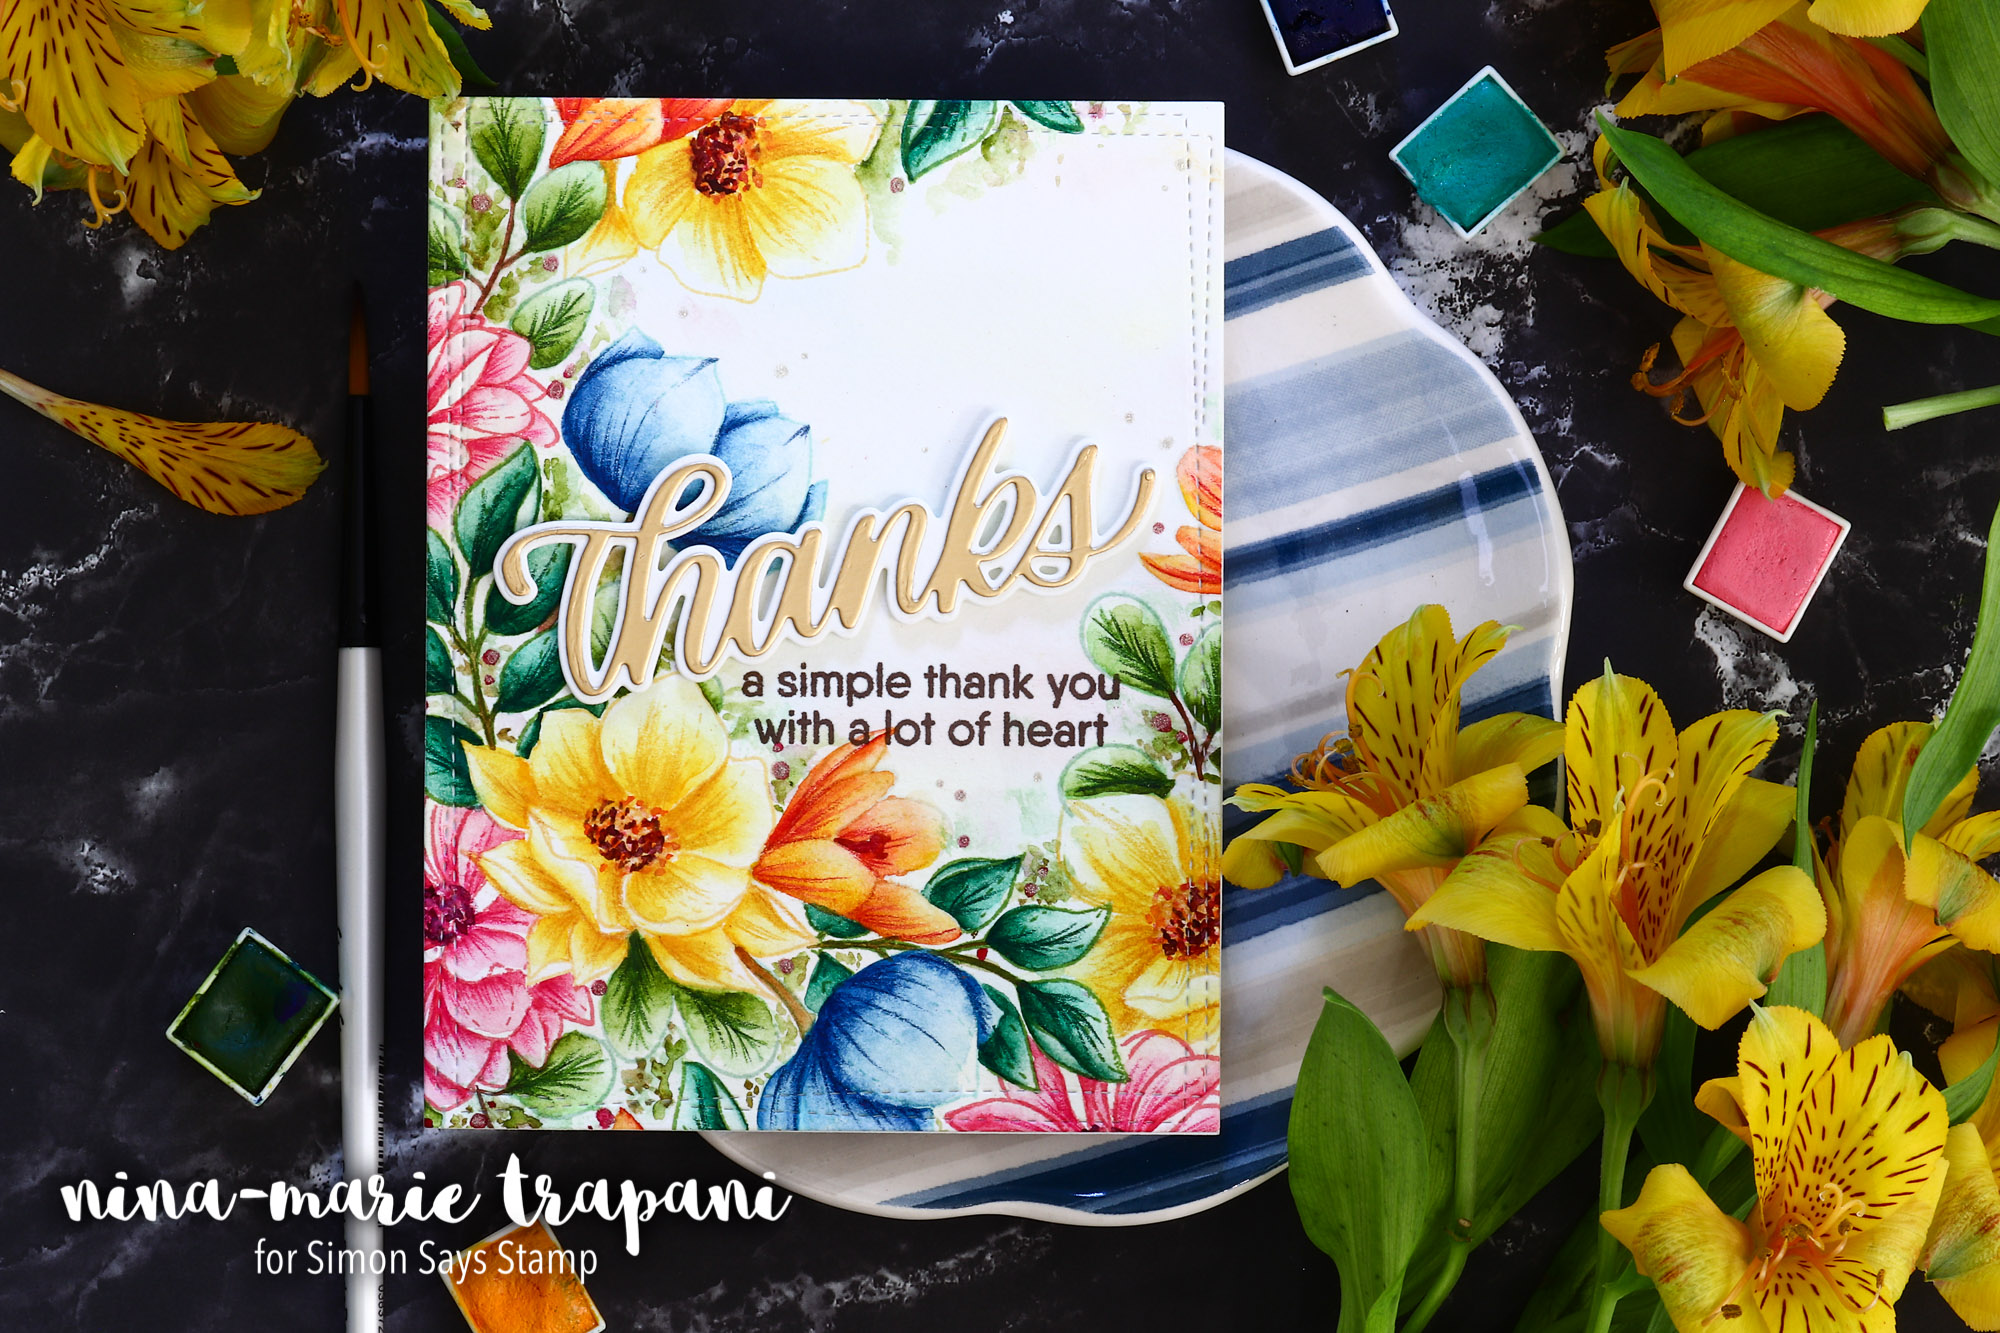 Easy No-Line Watercolor + 30 Day Coloring Challenge Blog Hop